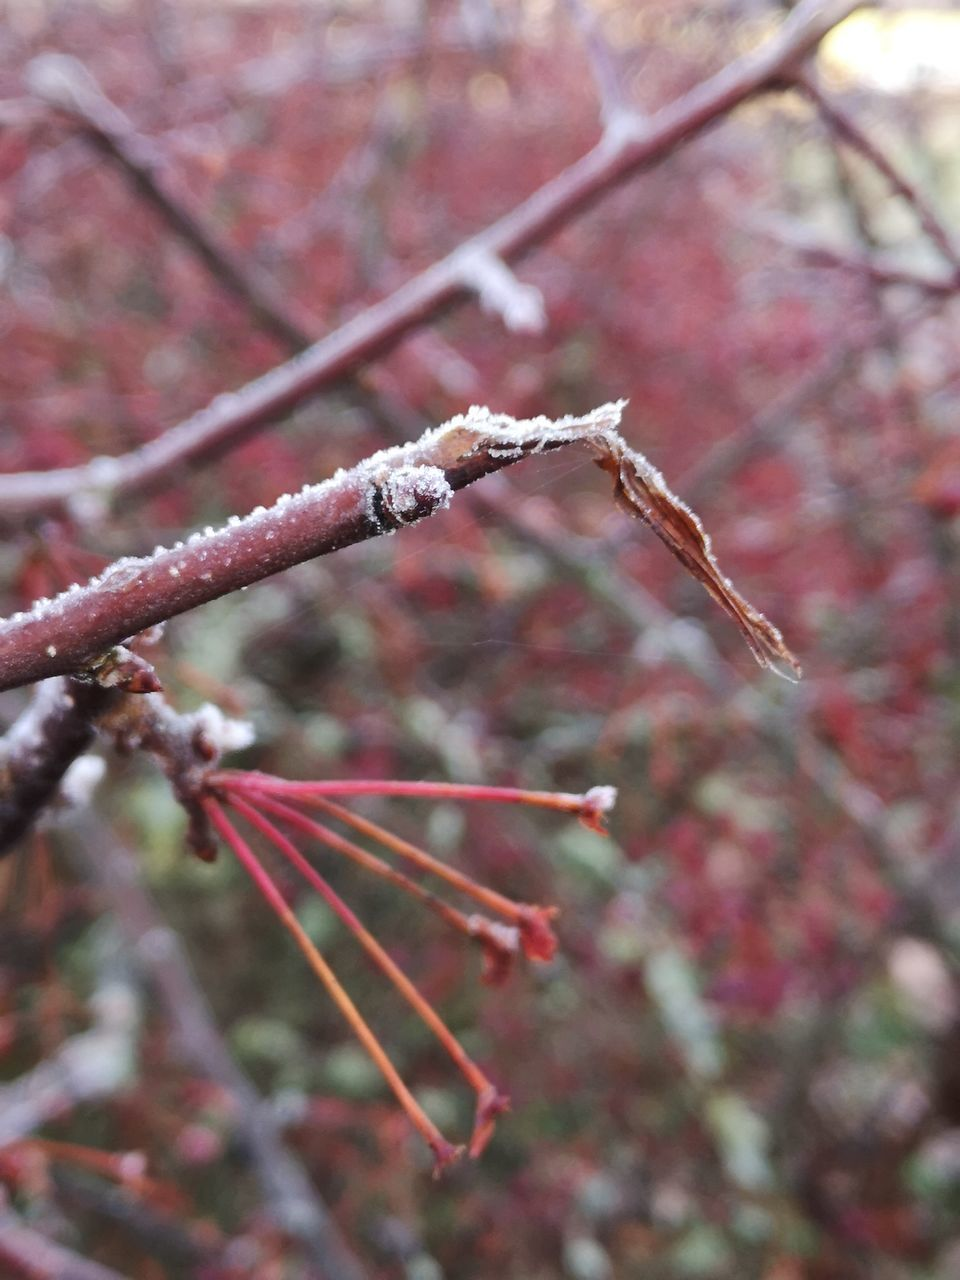 plant, tree, focus on foreground, day, close-up, nature, growth, branch, no people, beauty in nature, selective focus, flower, twig, outdoors, flowering plant, fragility, tranquility, winter, pink color, cherry blossom